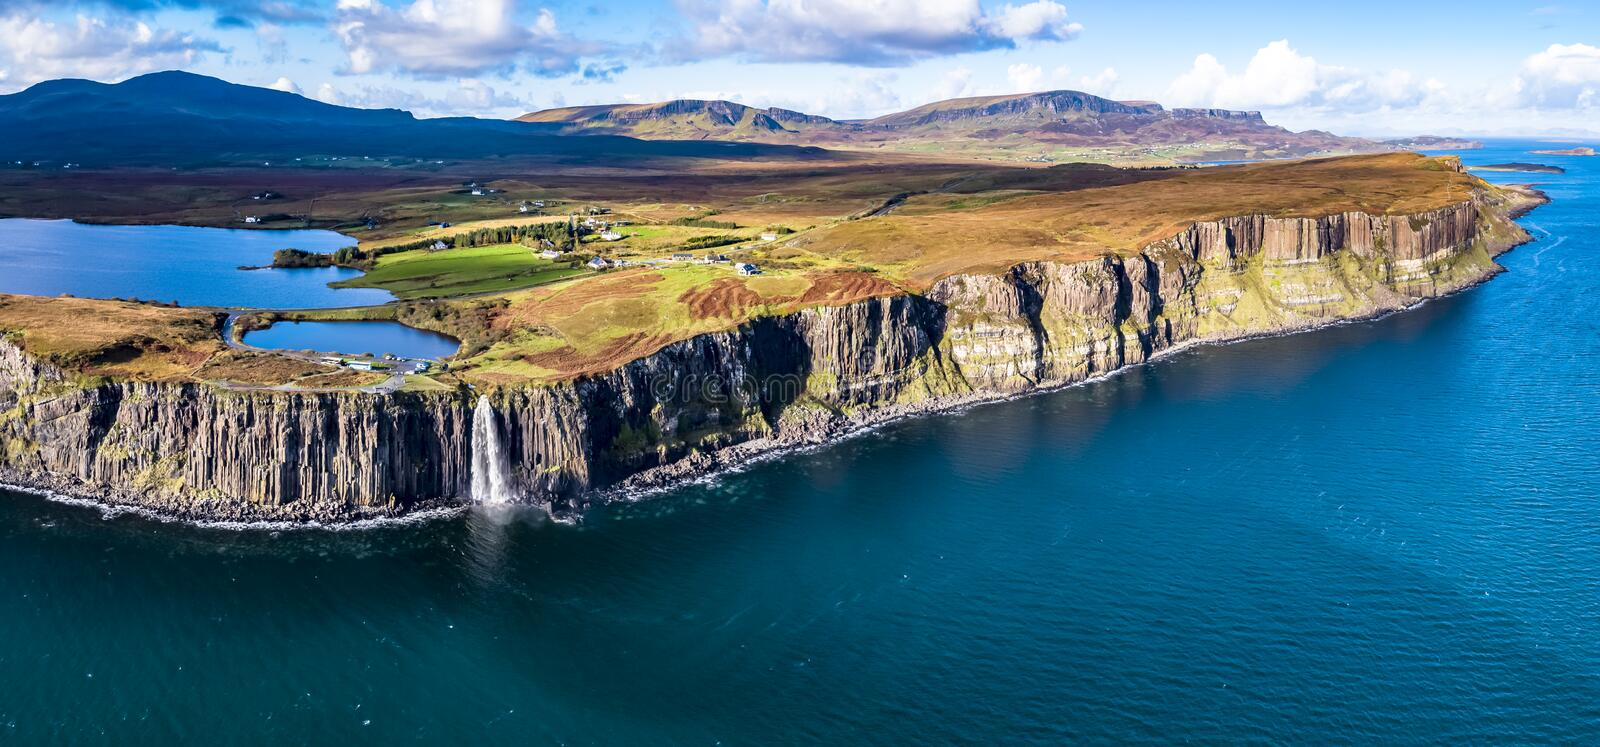 Aerial view of the dramatic coastline at the cliffs by Staffin with the famous Kilt Rock waterfall - Isle of Skye - royalty free stock photos